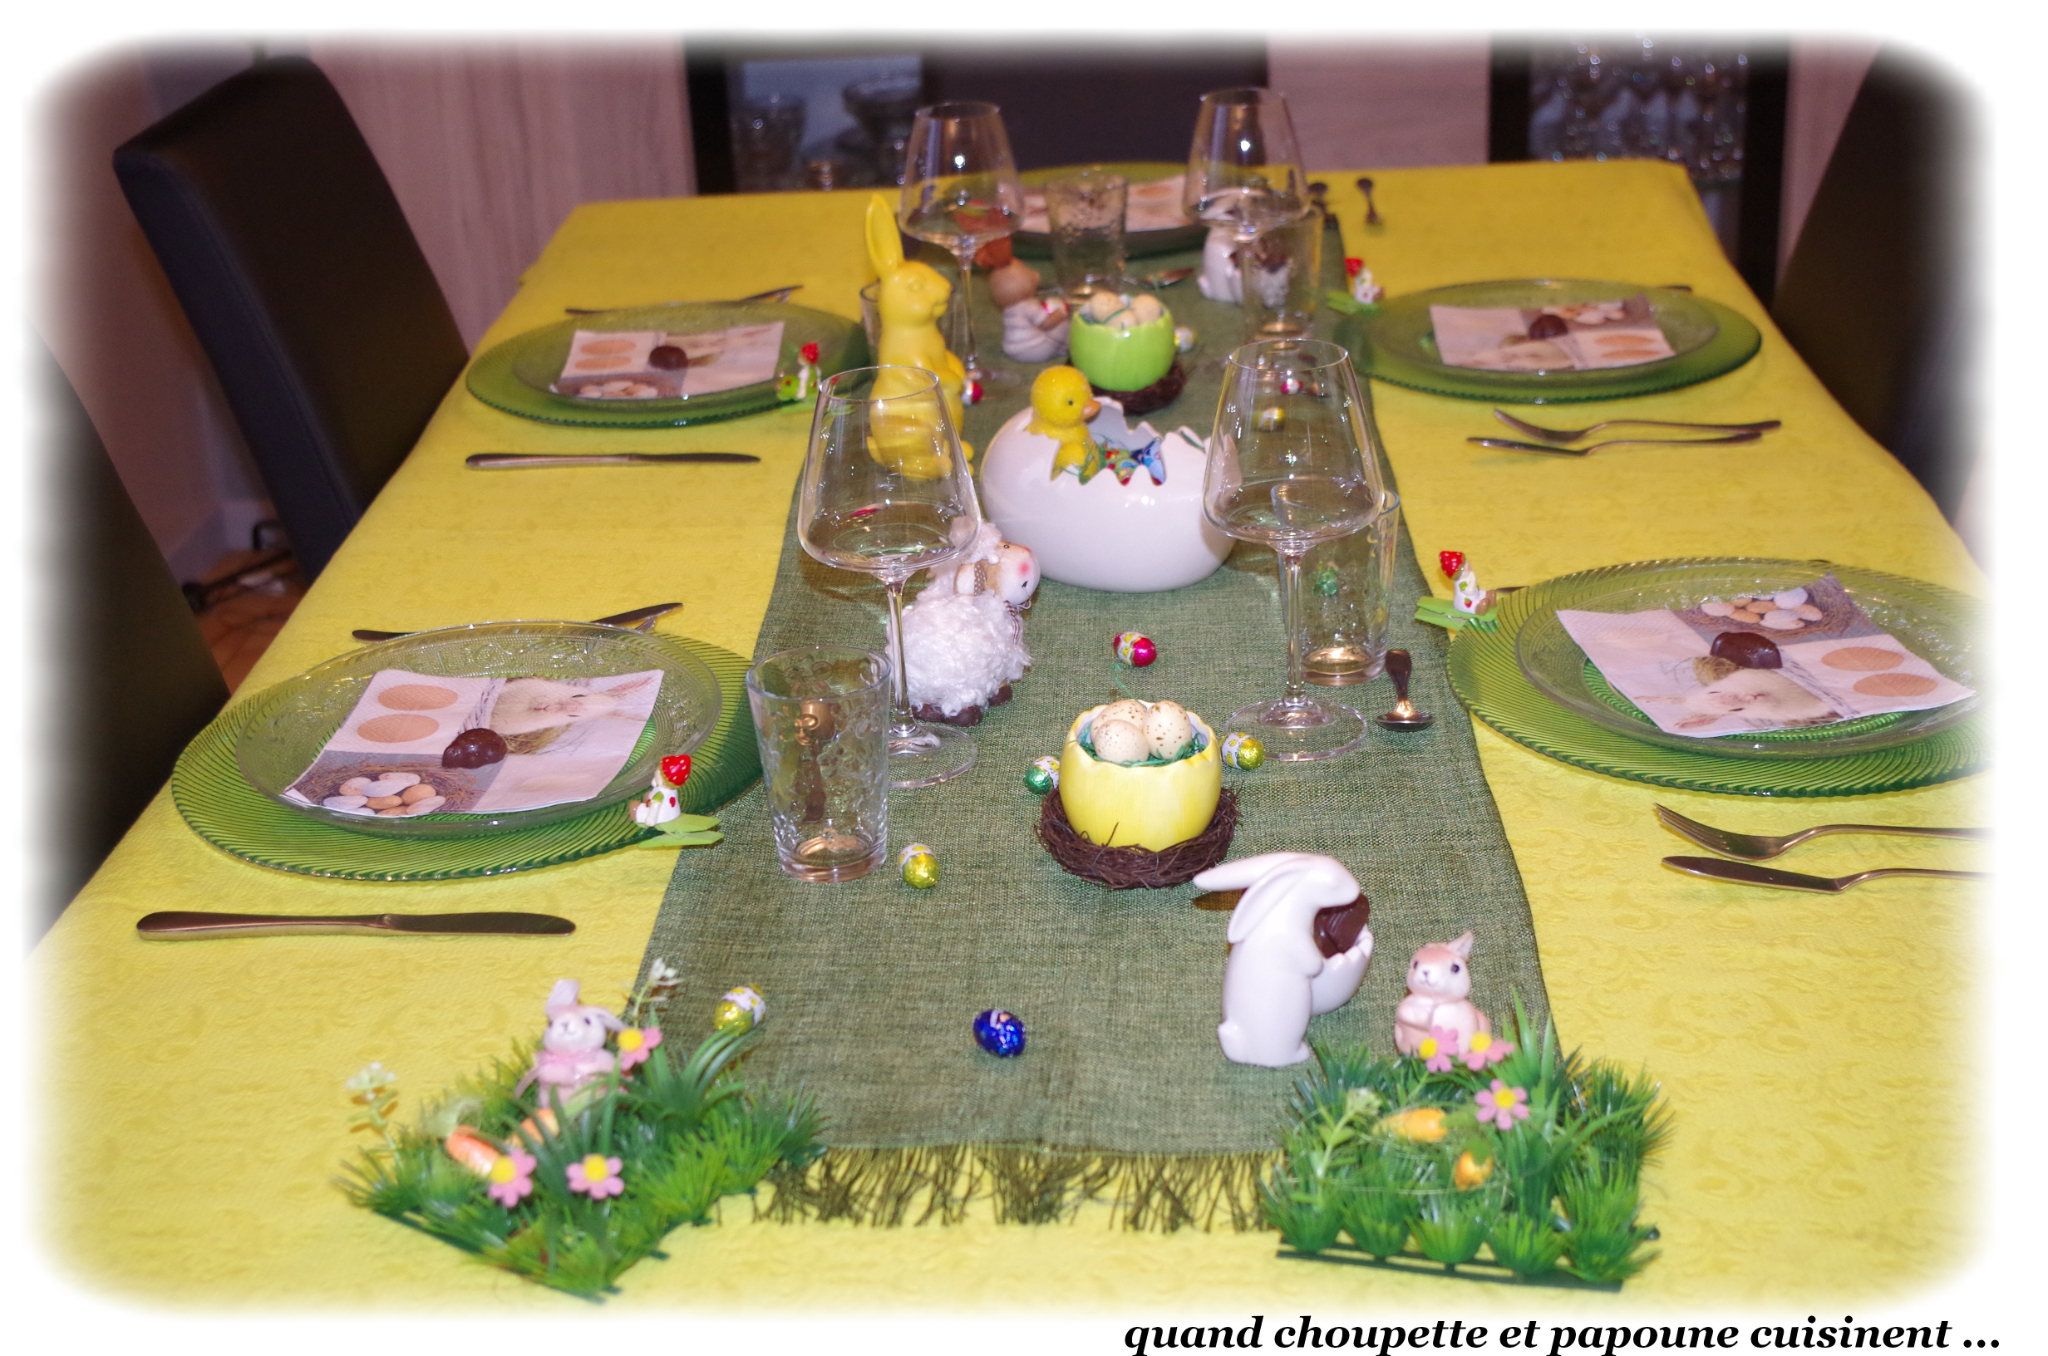 MA DECORATION DE TABLE DE PÂQUES 2019